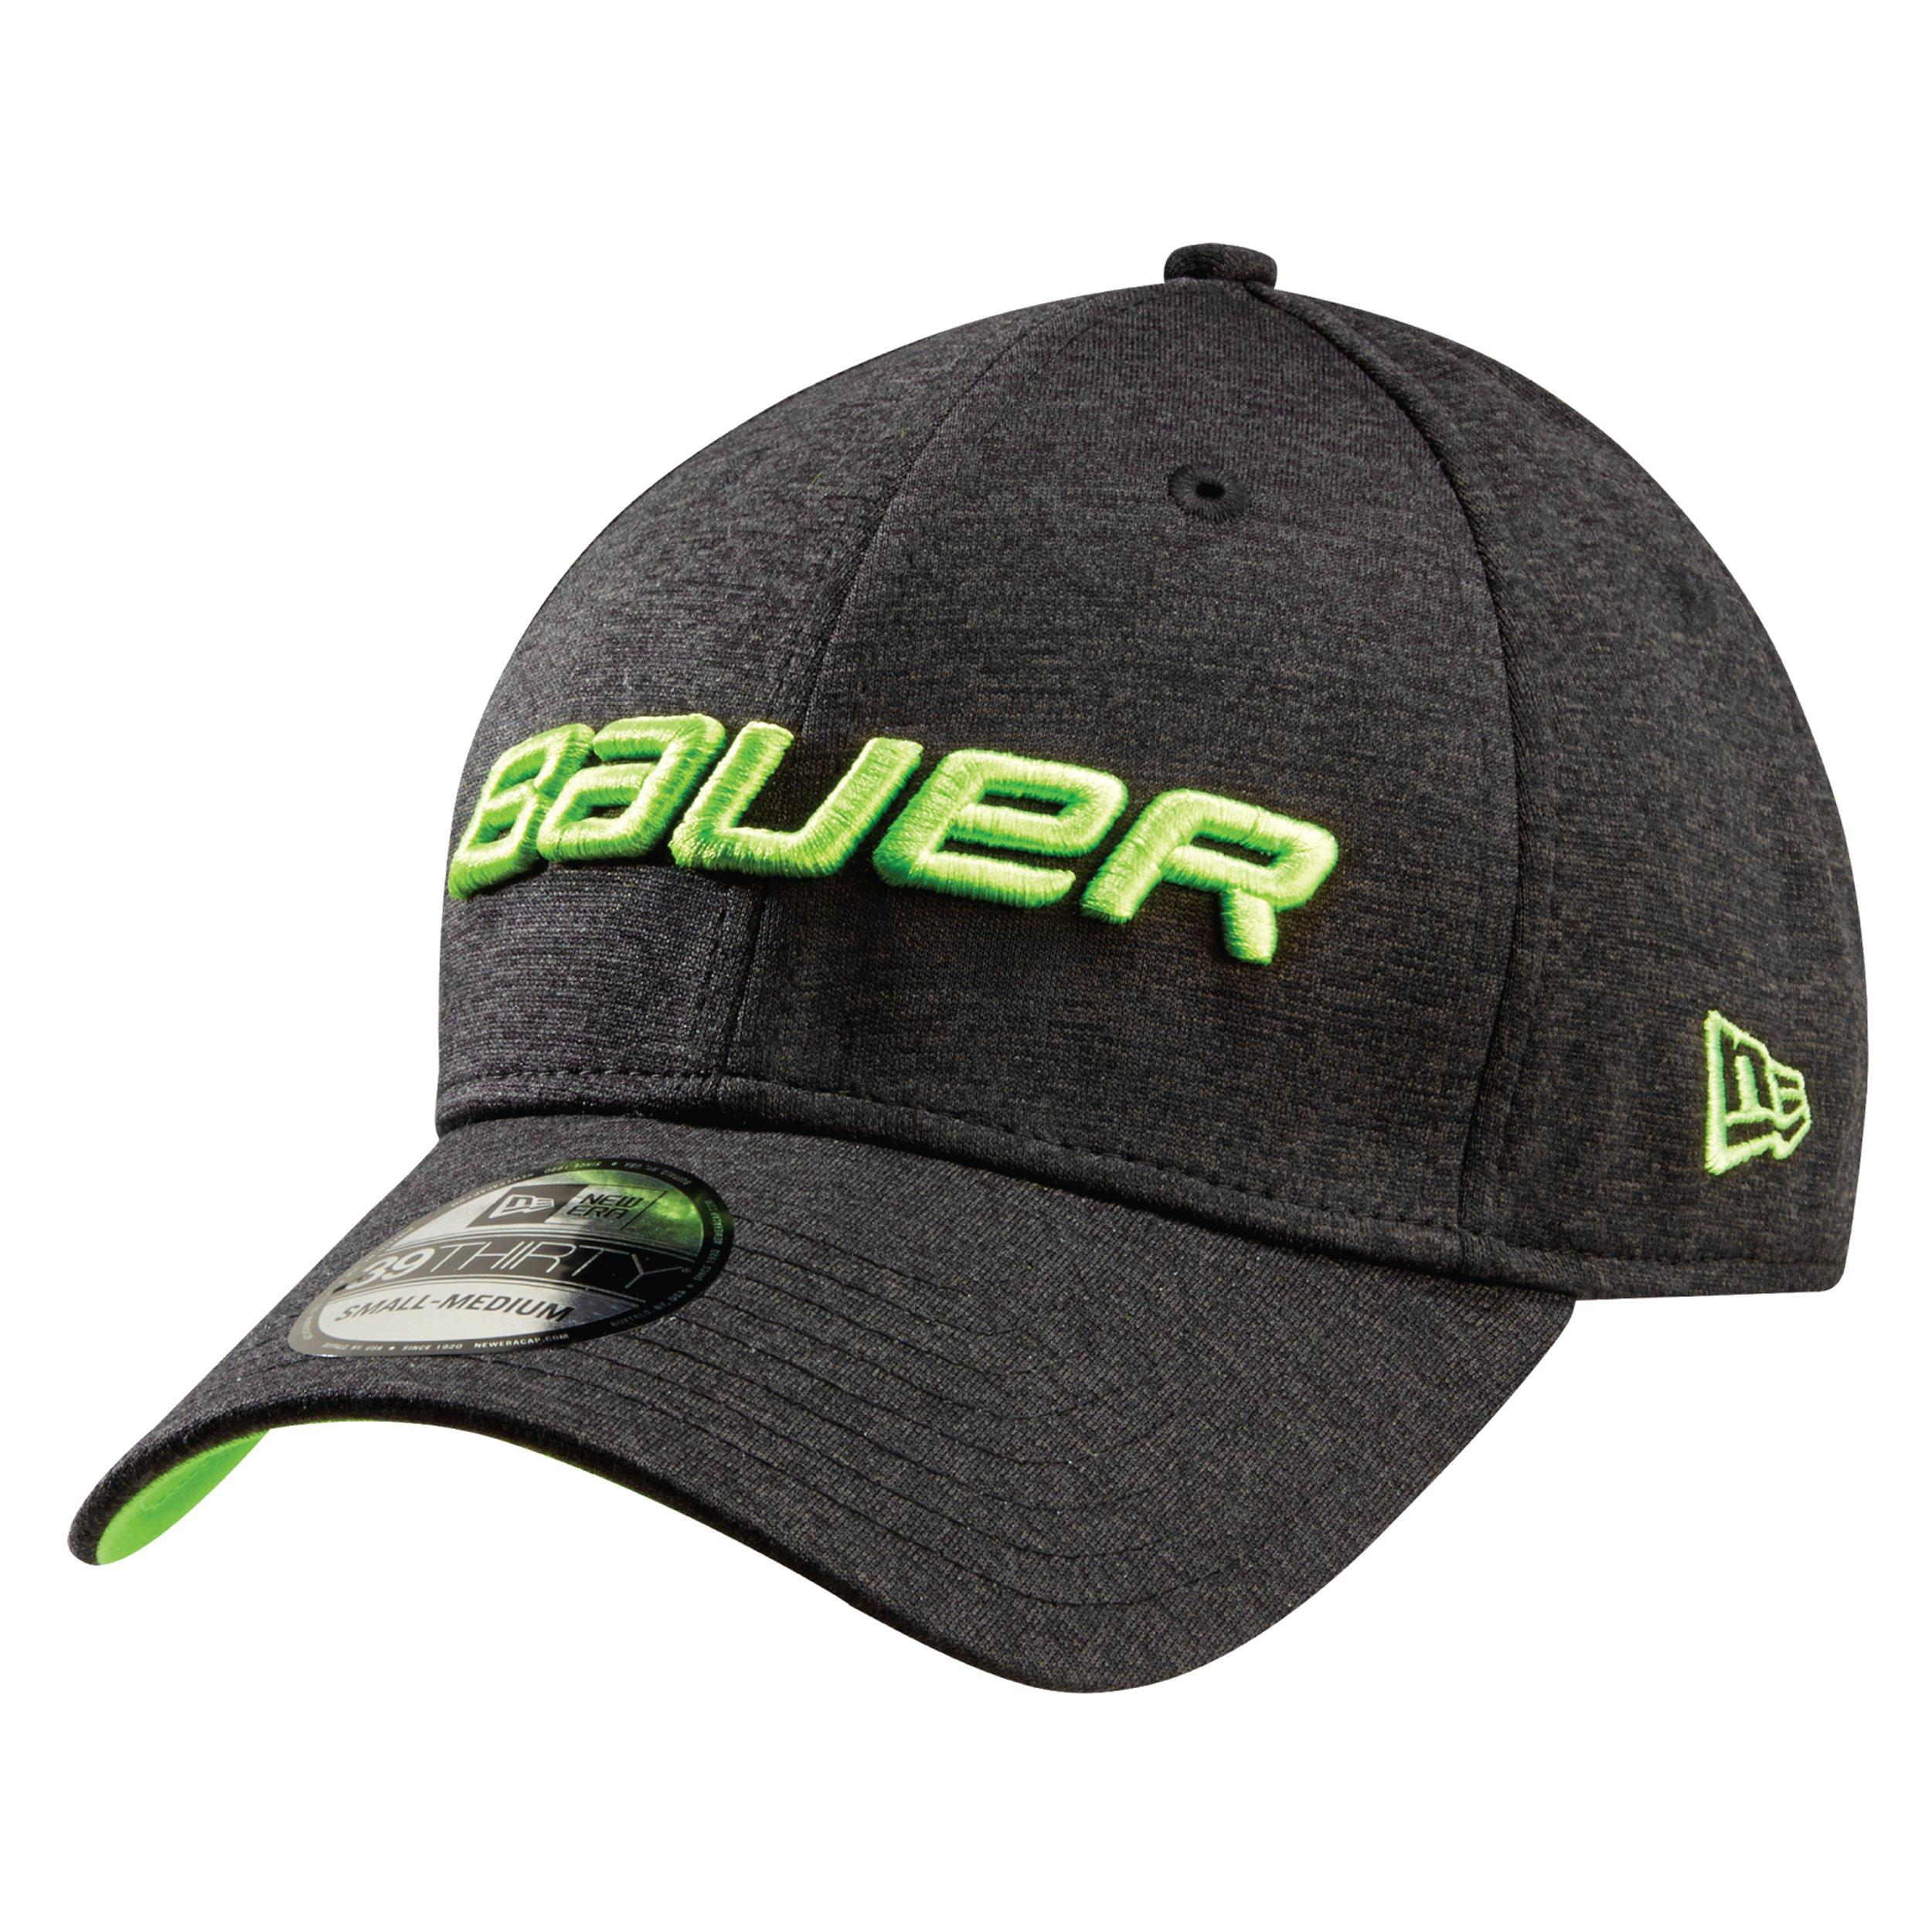 BAUER / New Era® 39Thirty® Color Pop Cap Senior,,Medium